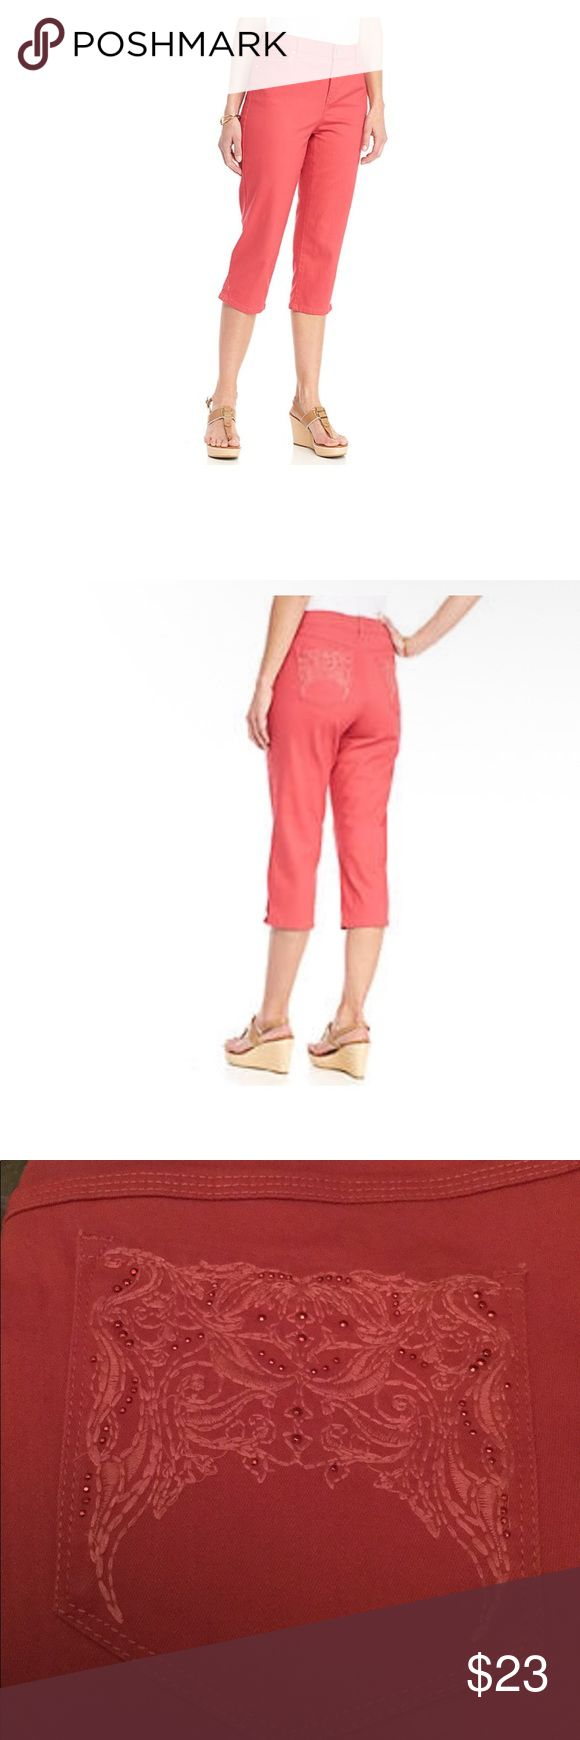 Gloria Vanderbilt Woven Coral Capri Spring will be here soon! These missy mid-rise capri's are beautiful. They have A lovely glitter pocket detail. Cute! Gloria Vanderbilt Pants Capris